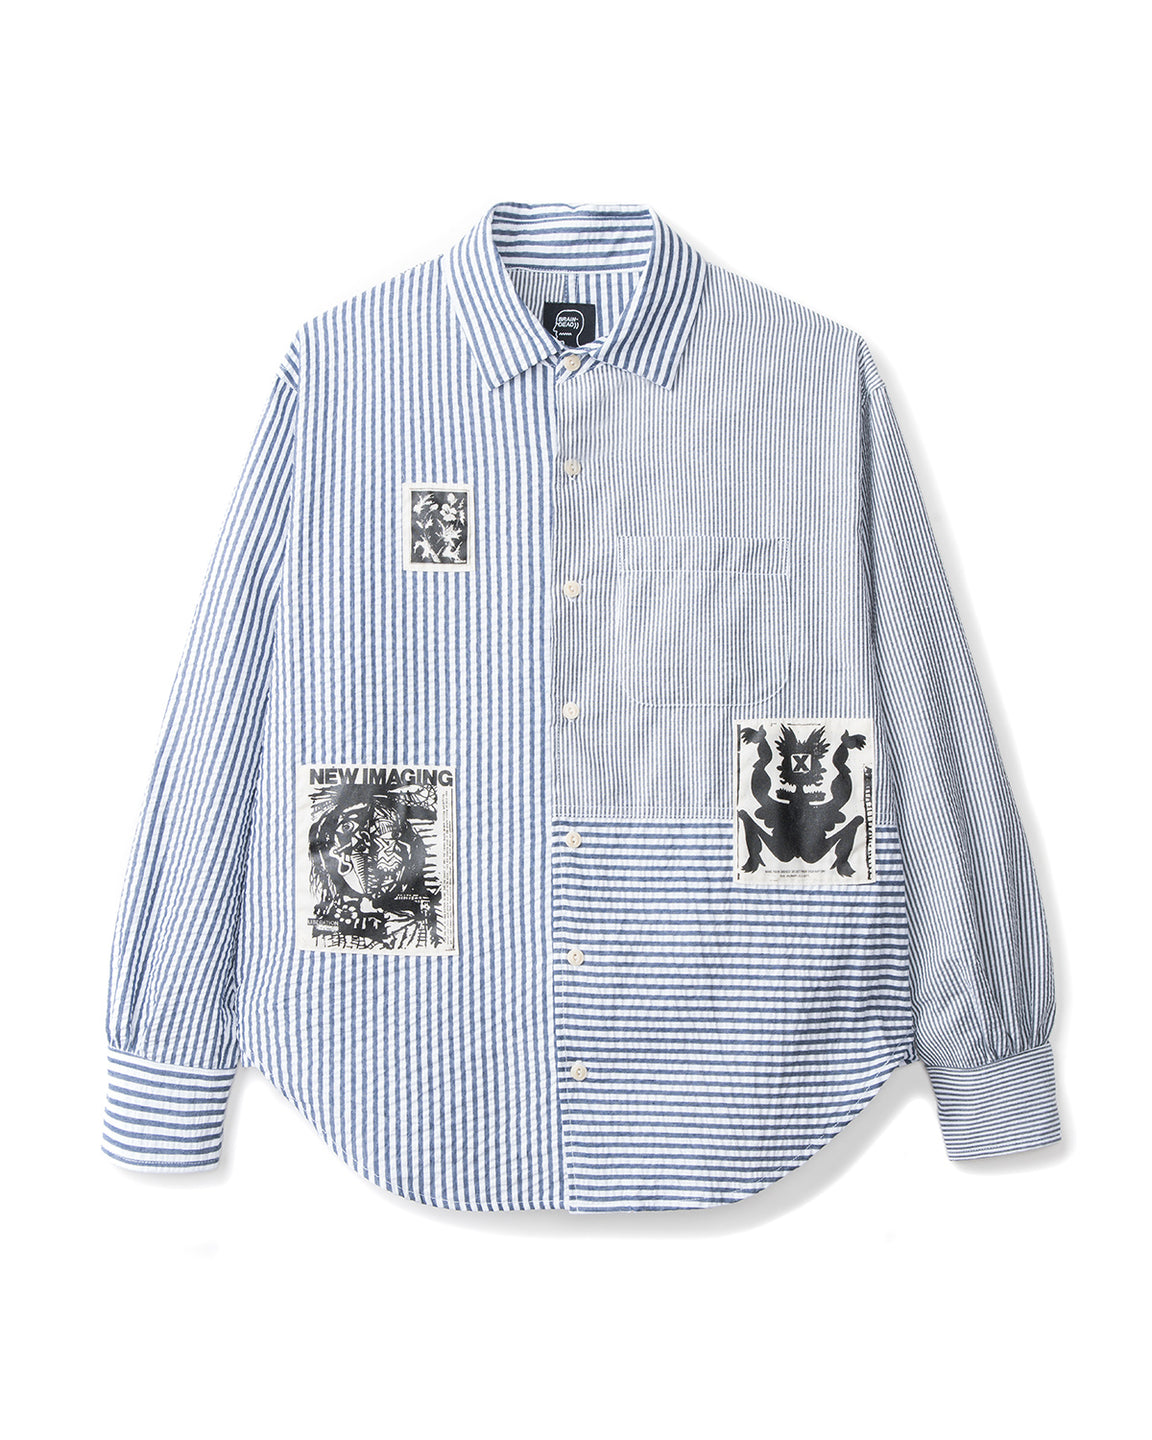 Paneled Button Up - Navy/White Seersucker